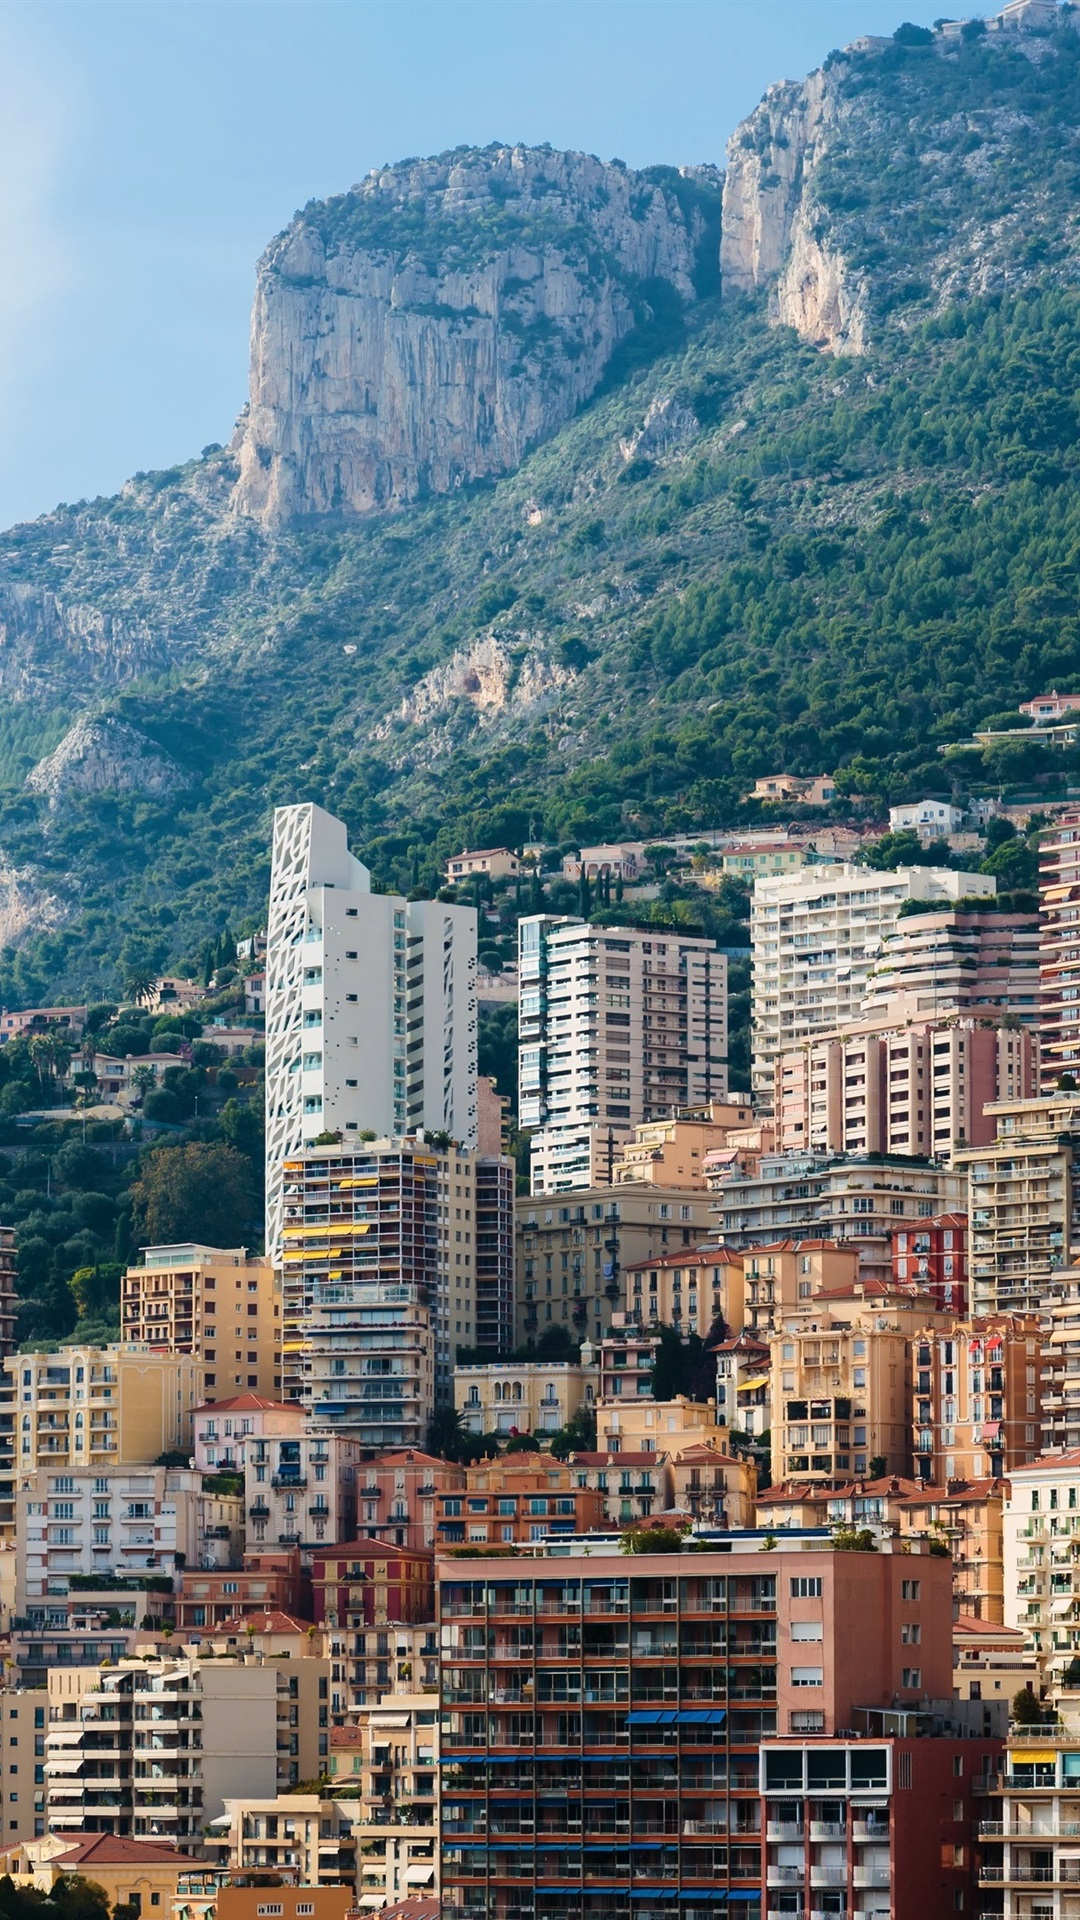 Wallpaper Monaco Monte Carlo Mountains Rocks City Houses 3840x2160 Uhd 4k Picture Image